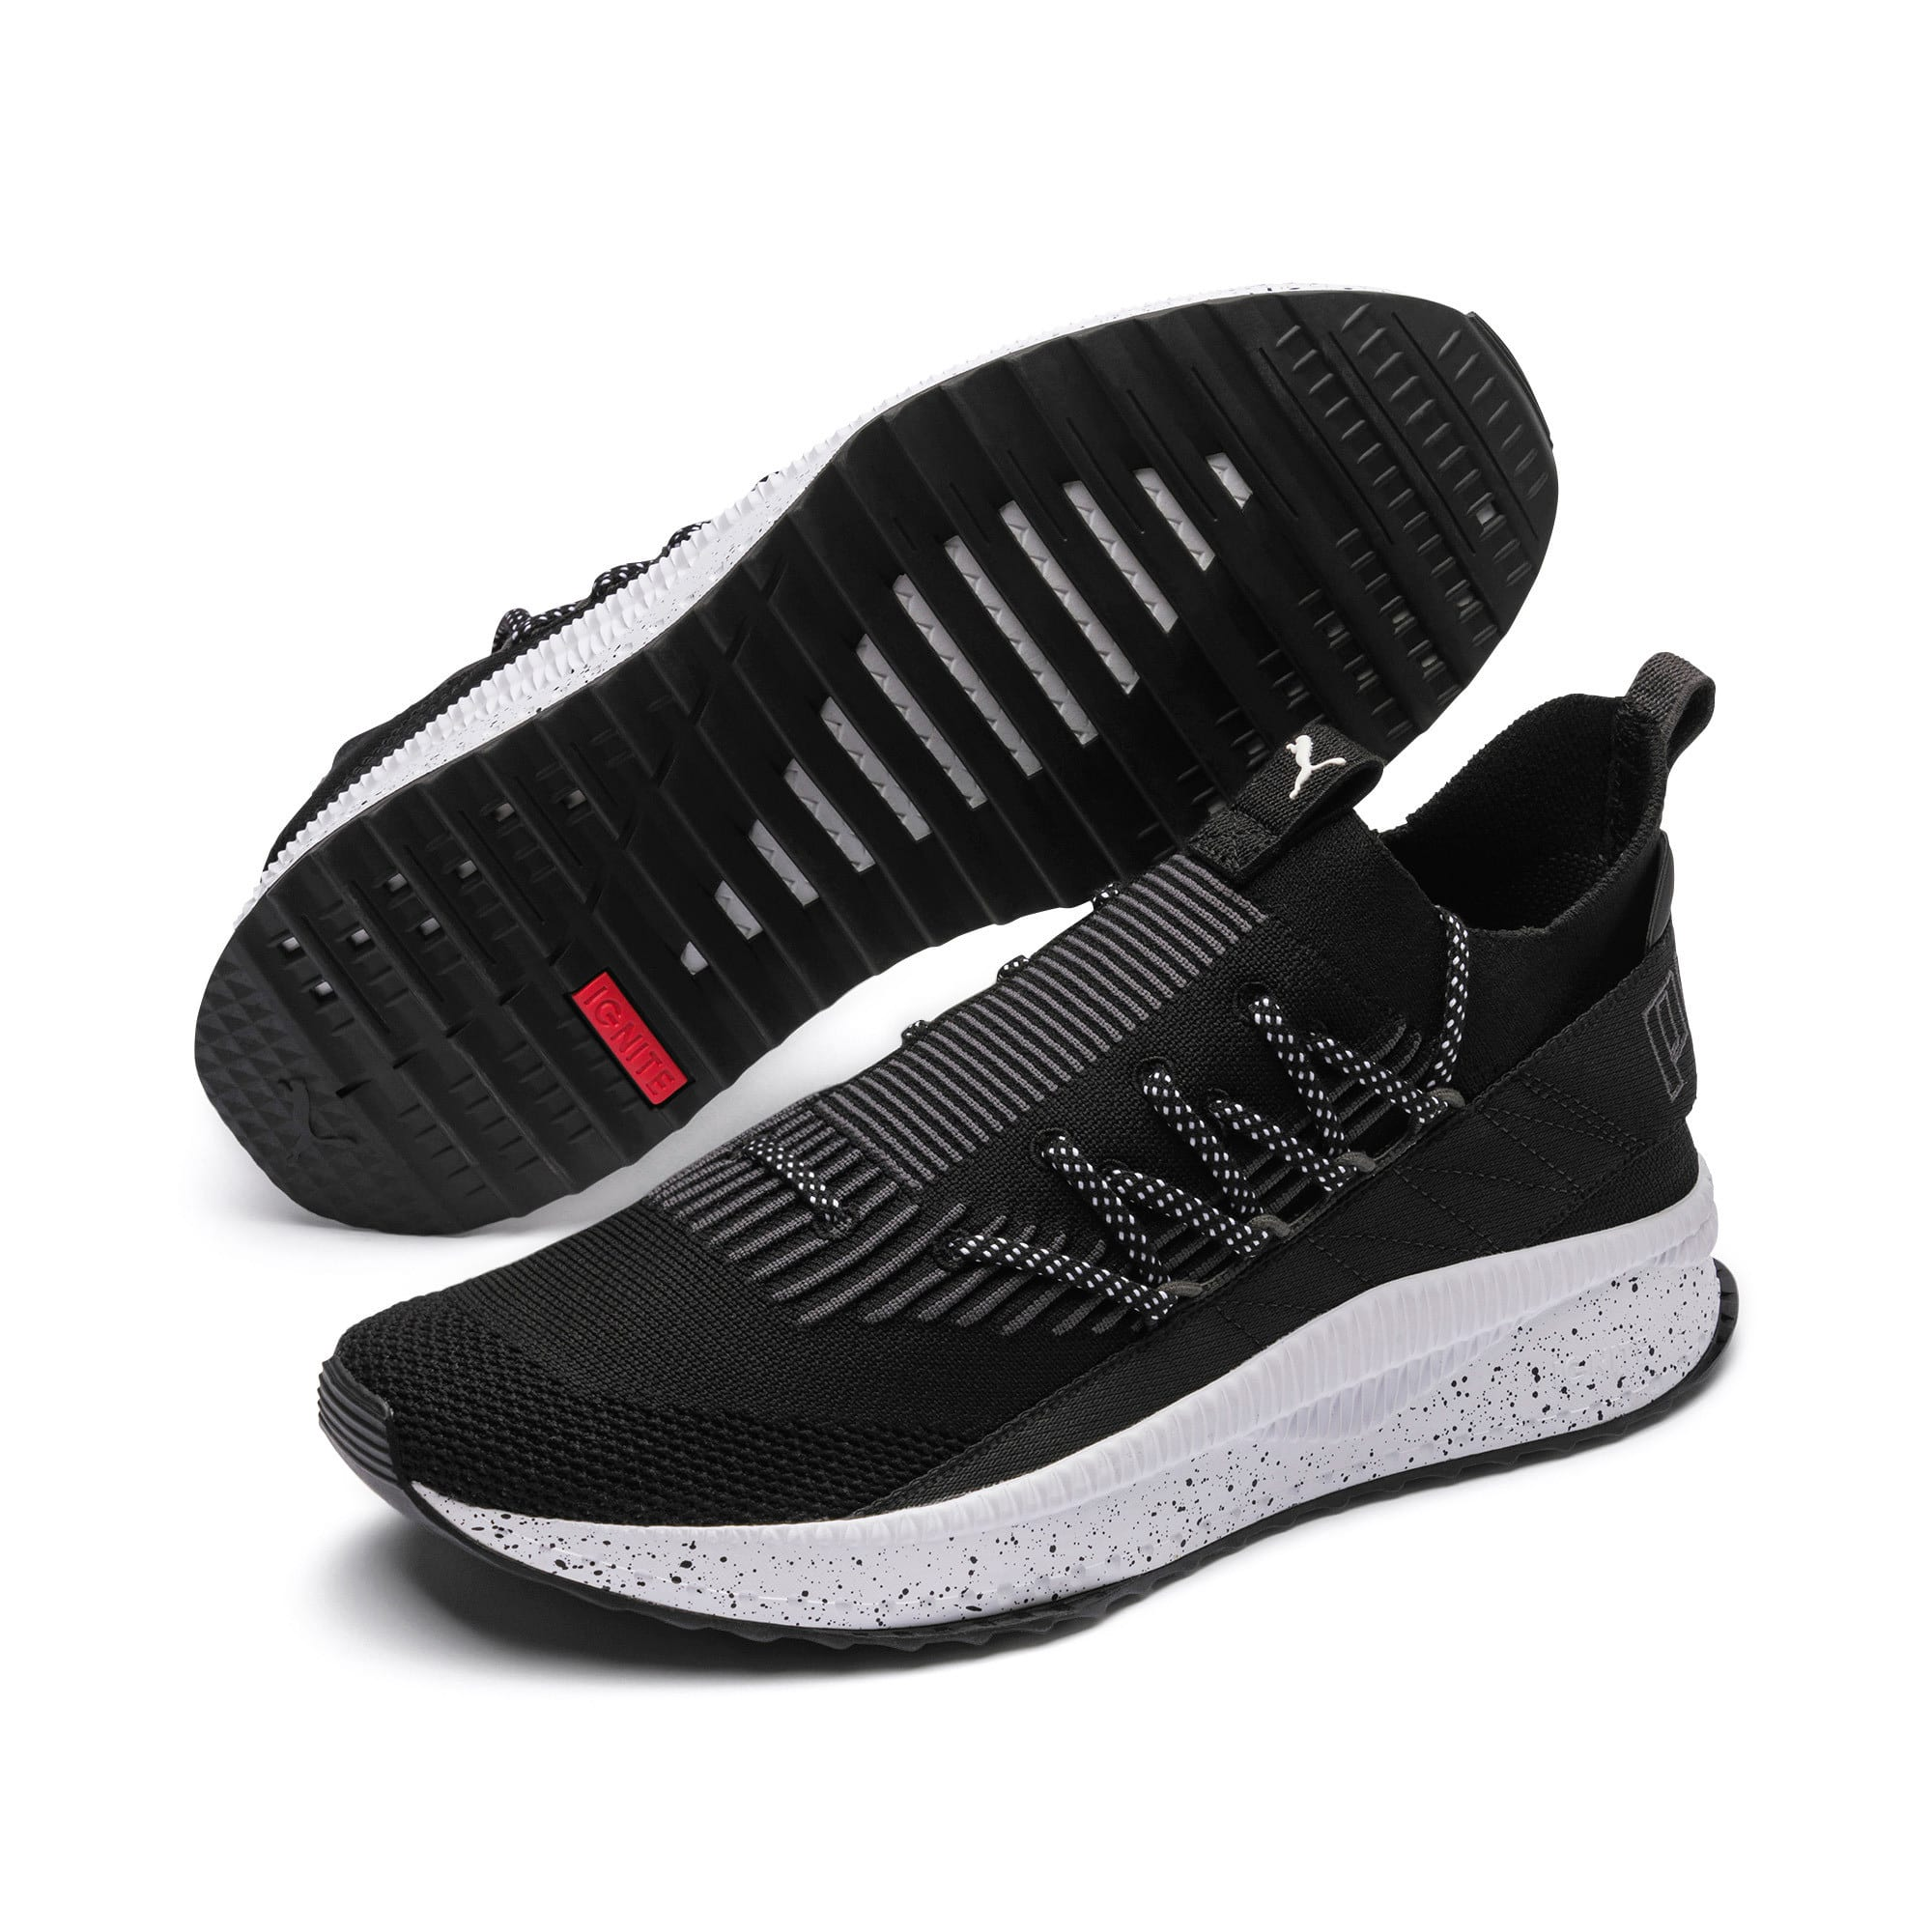 Thumbnail 2 of TSUGI Kai Jun Speckle evoKNIT Sneaker, Puma Black-Asphalt, medium